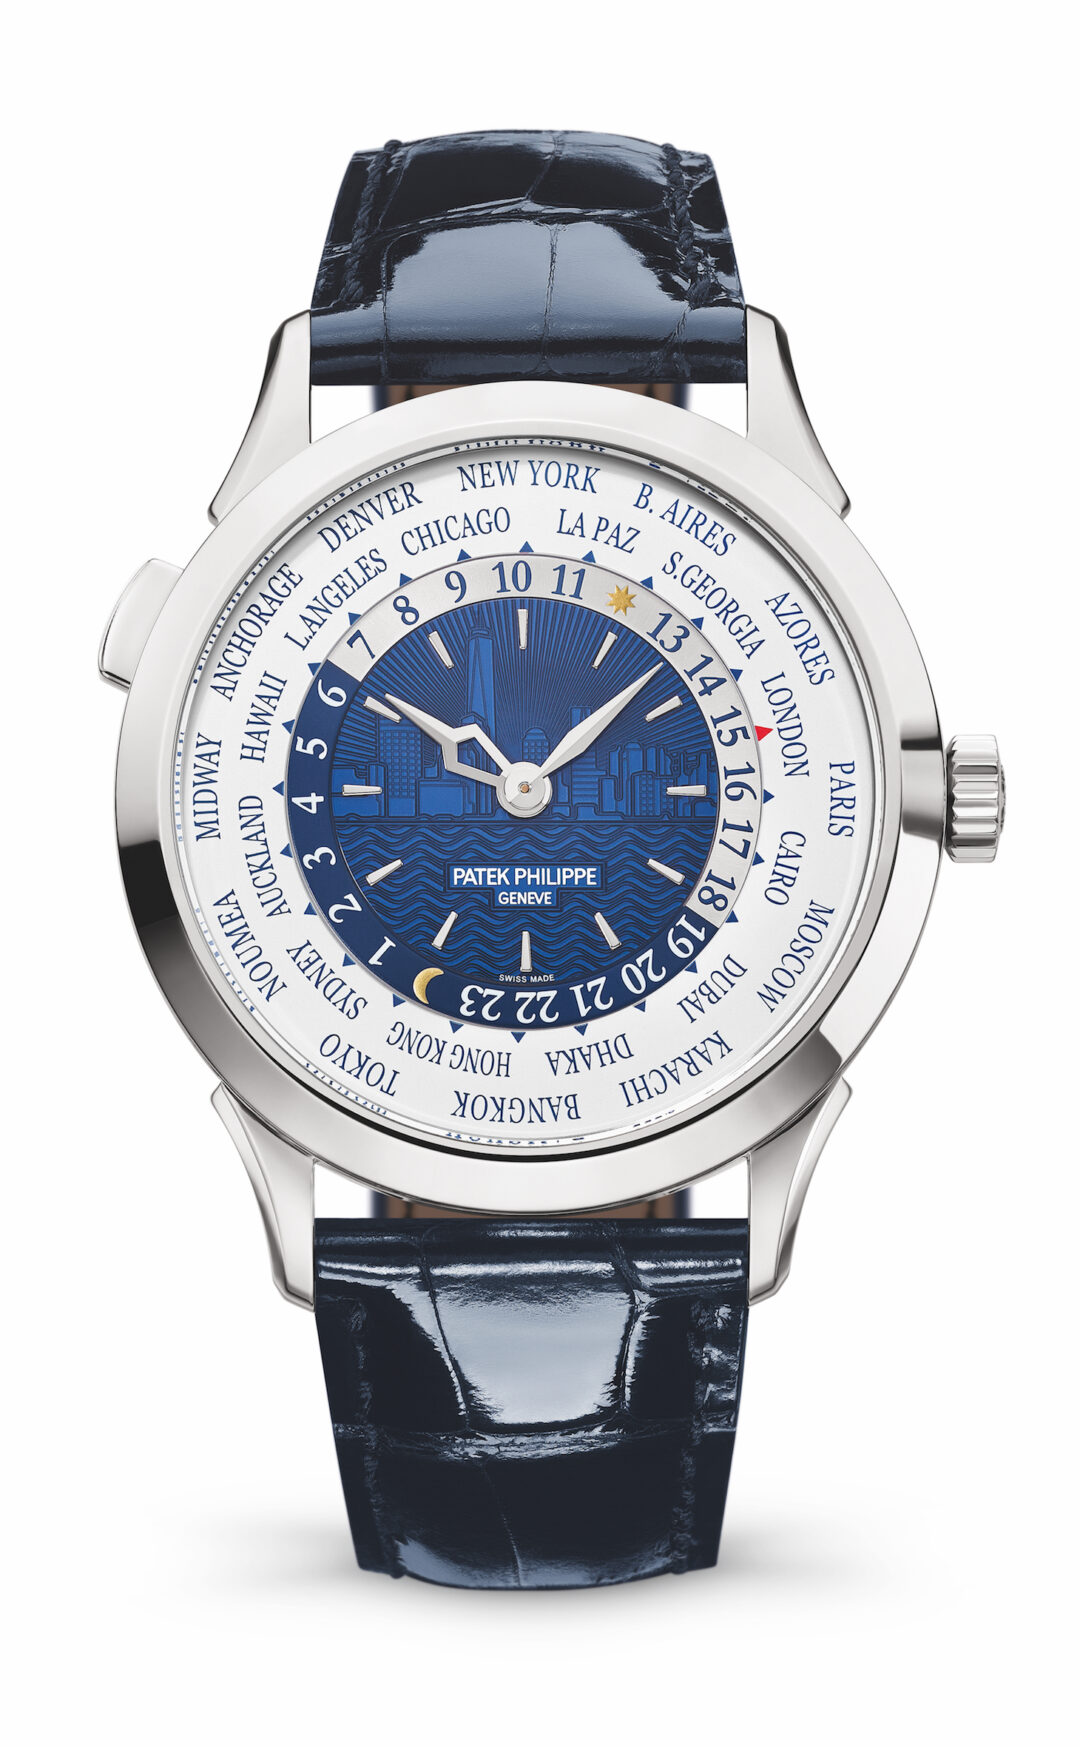 Patek Philippe Men's World Time Ref. 5230 New York 2017 Special Edition